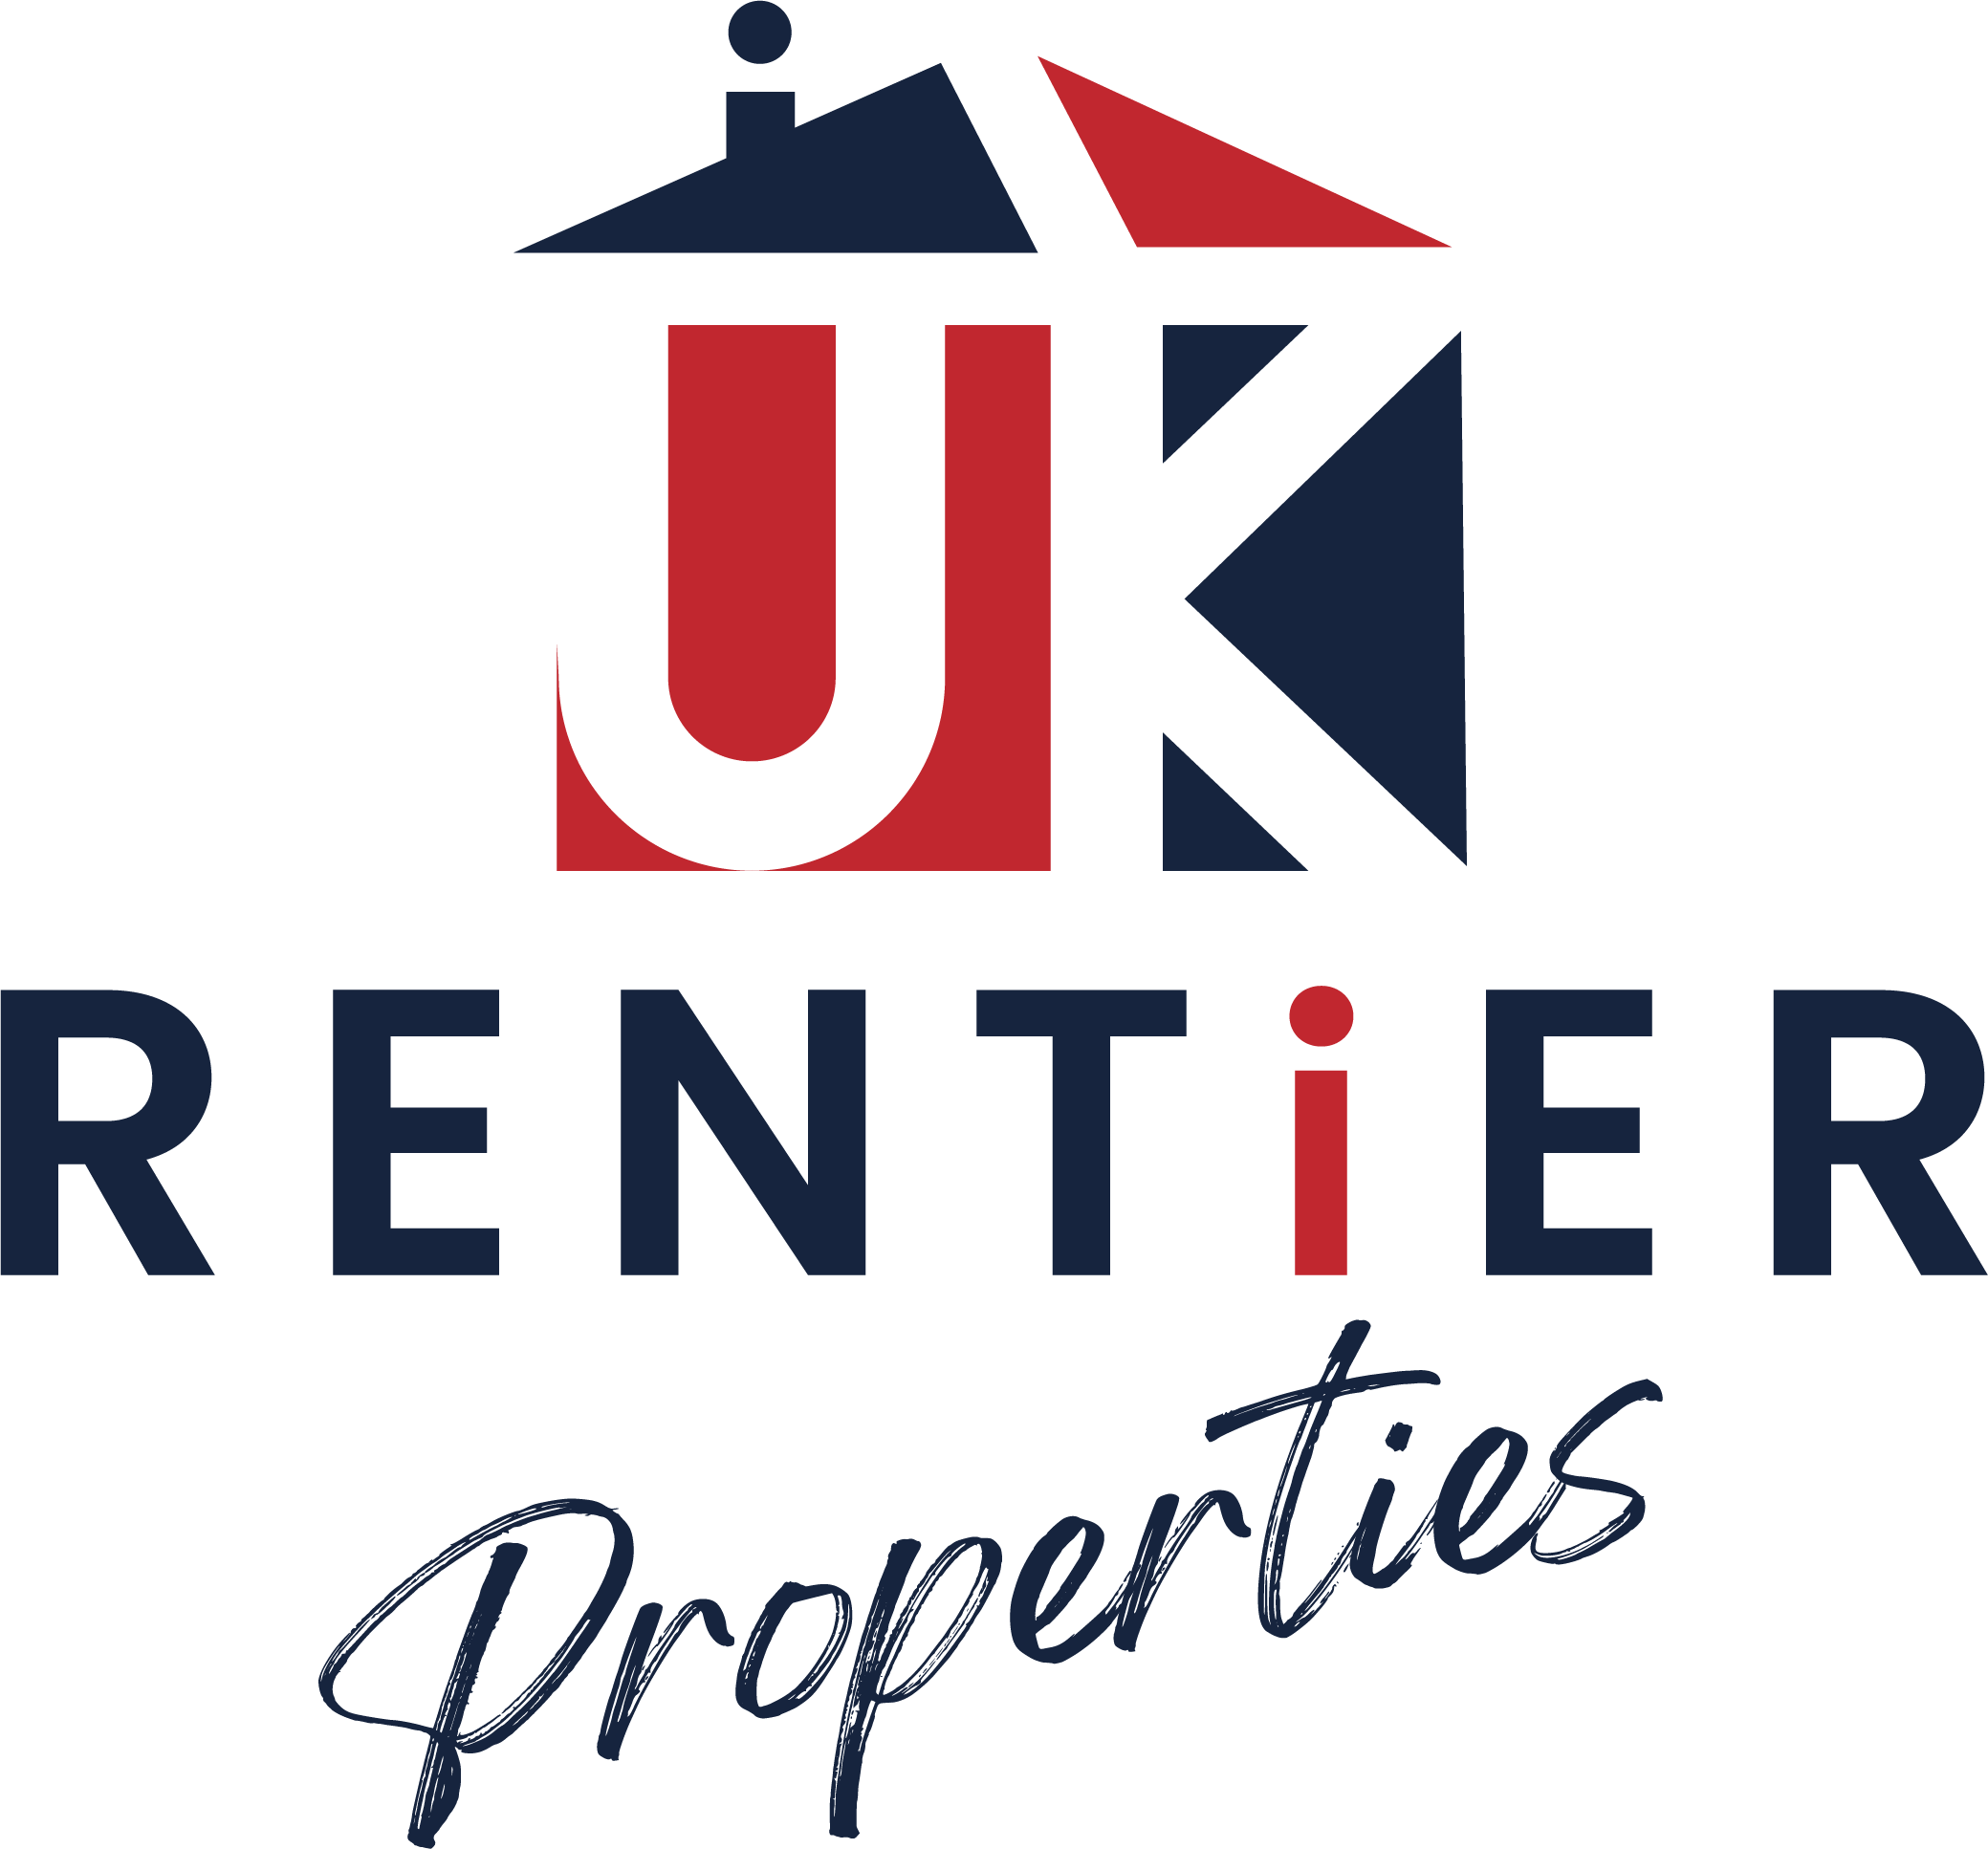 UK Rentier Properties a.s.